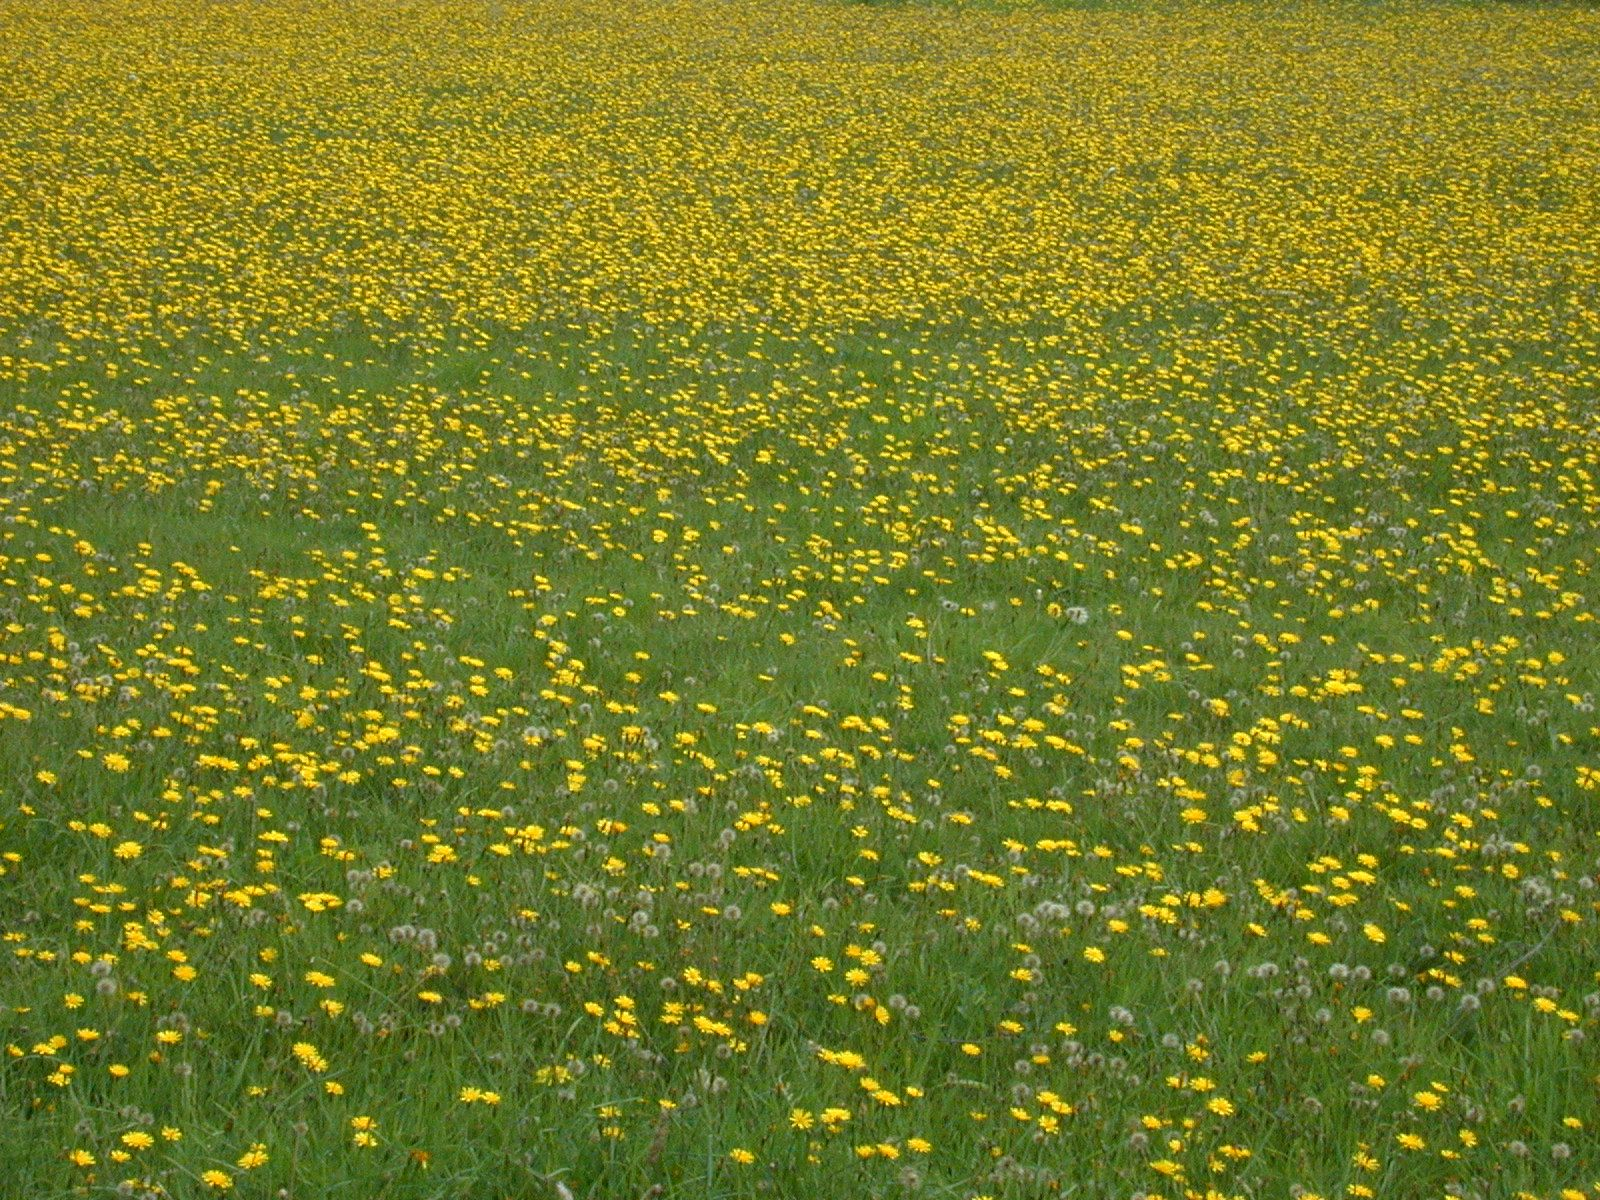 Imageafter Photos Field Flower Flowers Of Yellow Poppy Poppies